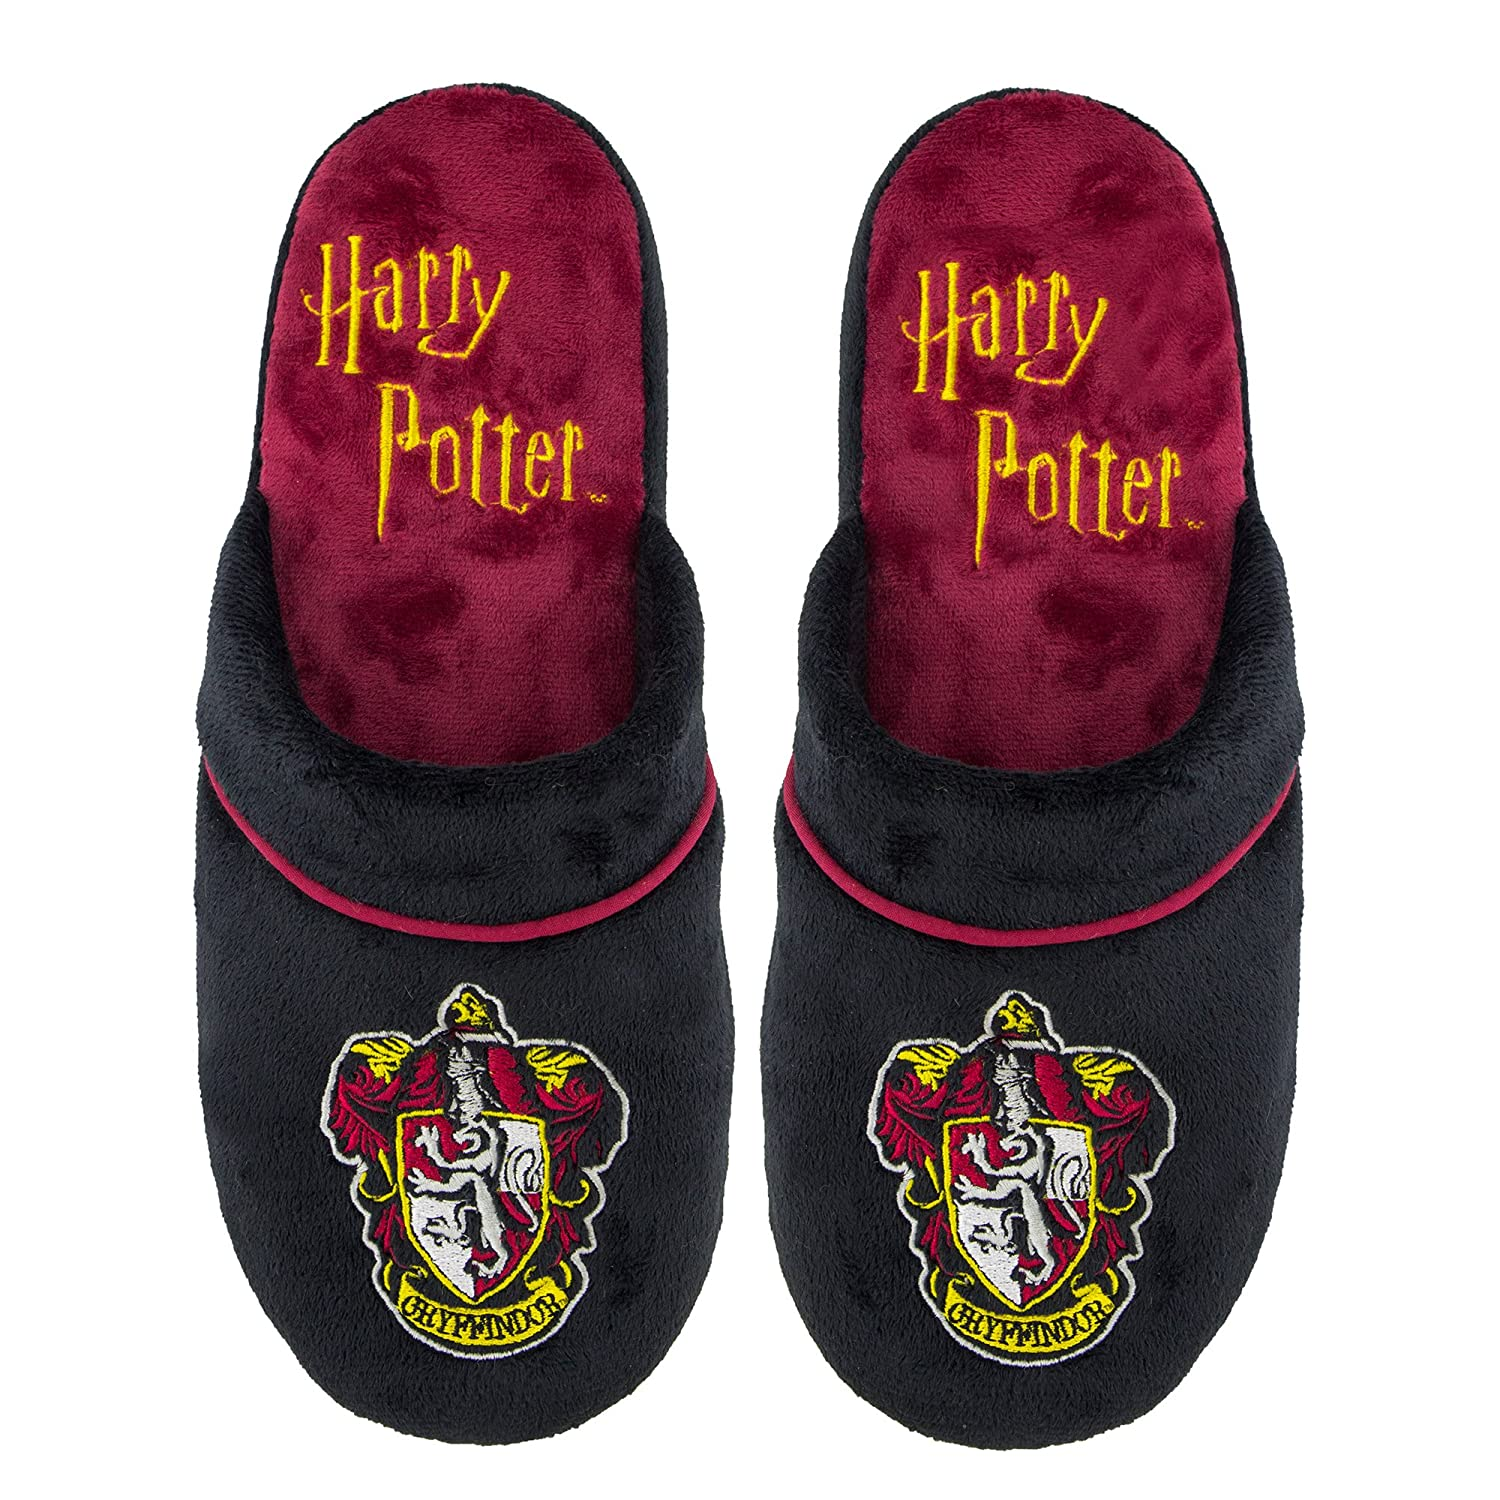 8b33ac1e3984 OFFICIAL AND AUTHENTIC HARRY POTTER licensed slippers by Cinereplicas  designed in FRANCE ADULTS UNISEX SIZES please check our size guide (S M    5.5-8.5US ...